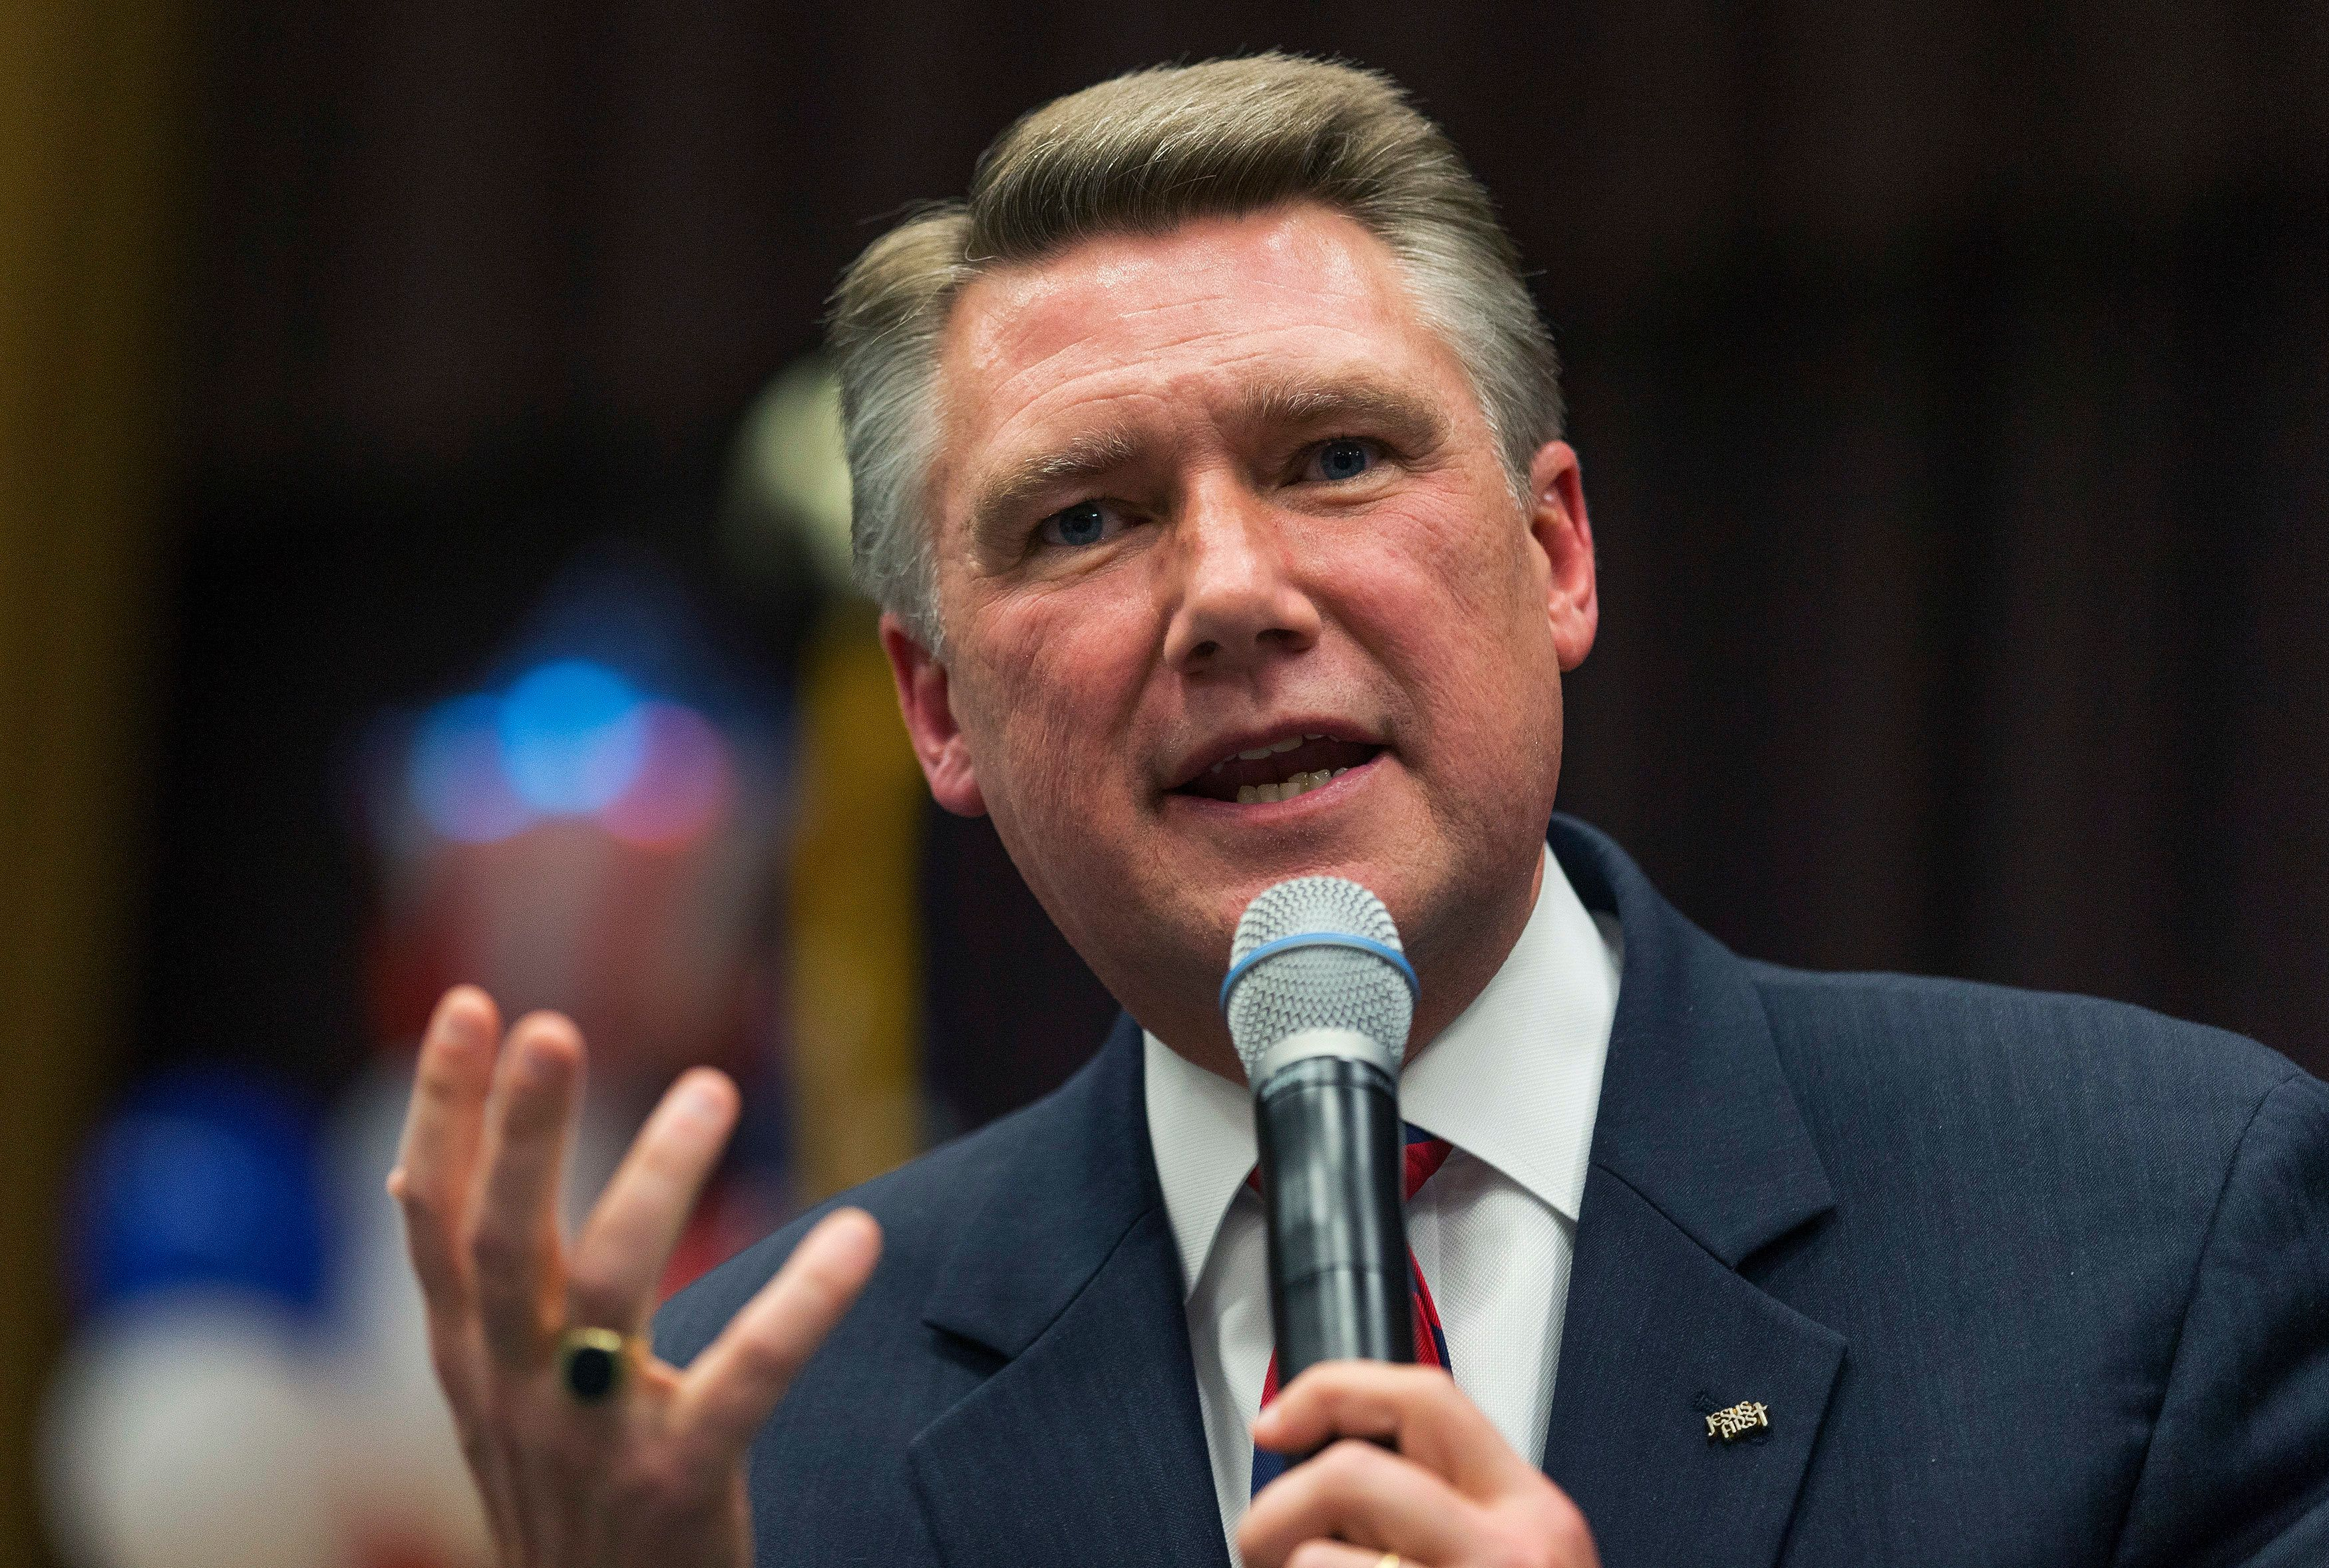 Mark Harris' campaign added dozens of new spots on the Weather Channel to his ad buy.